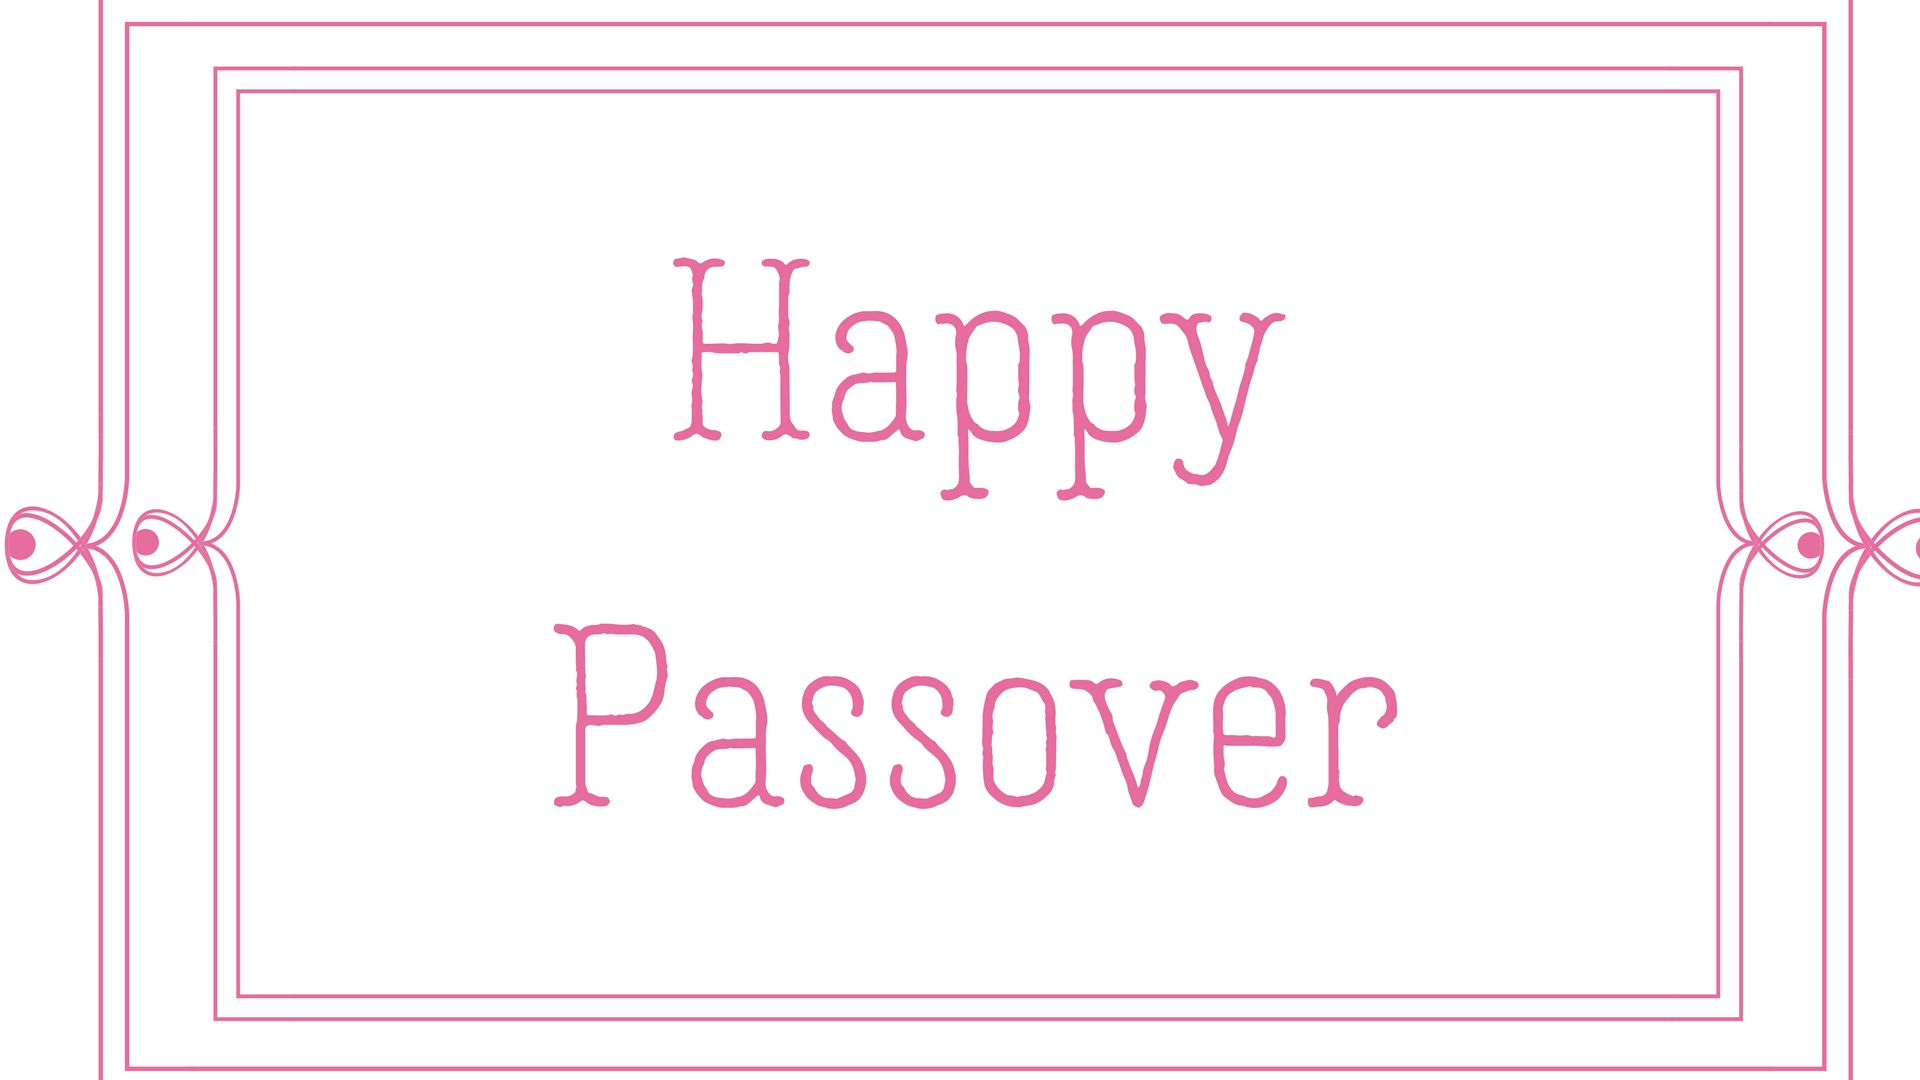 Happy Passover Rectangle Frame Greeting Card Postcard 25